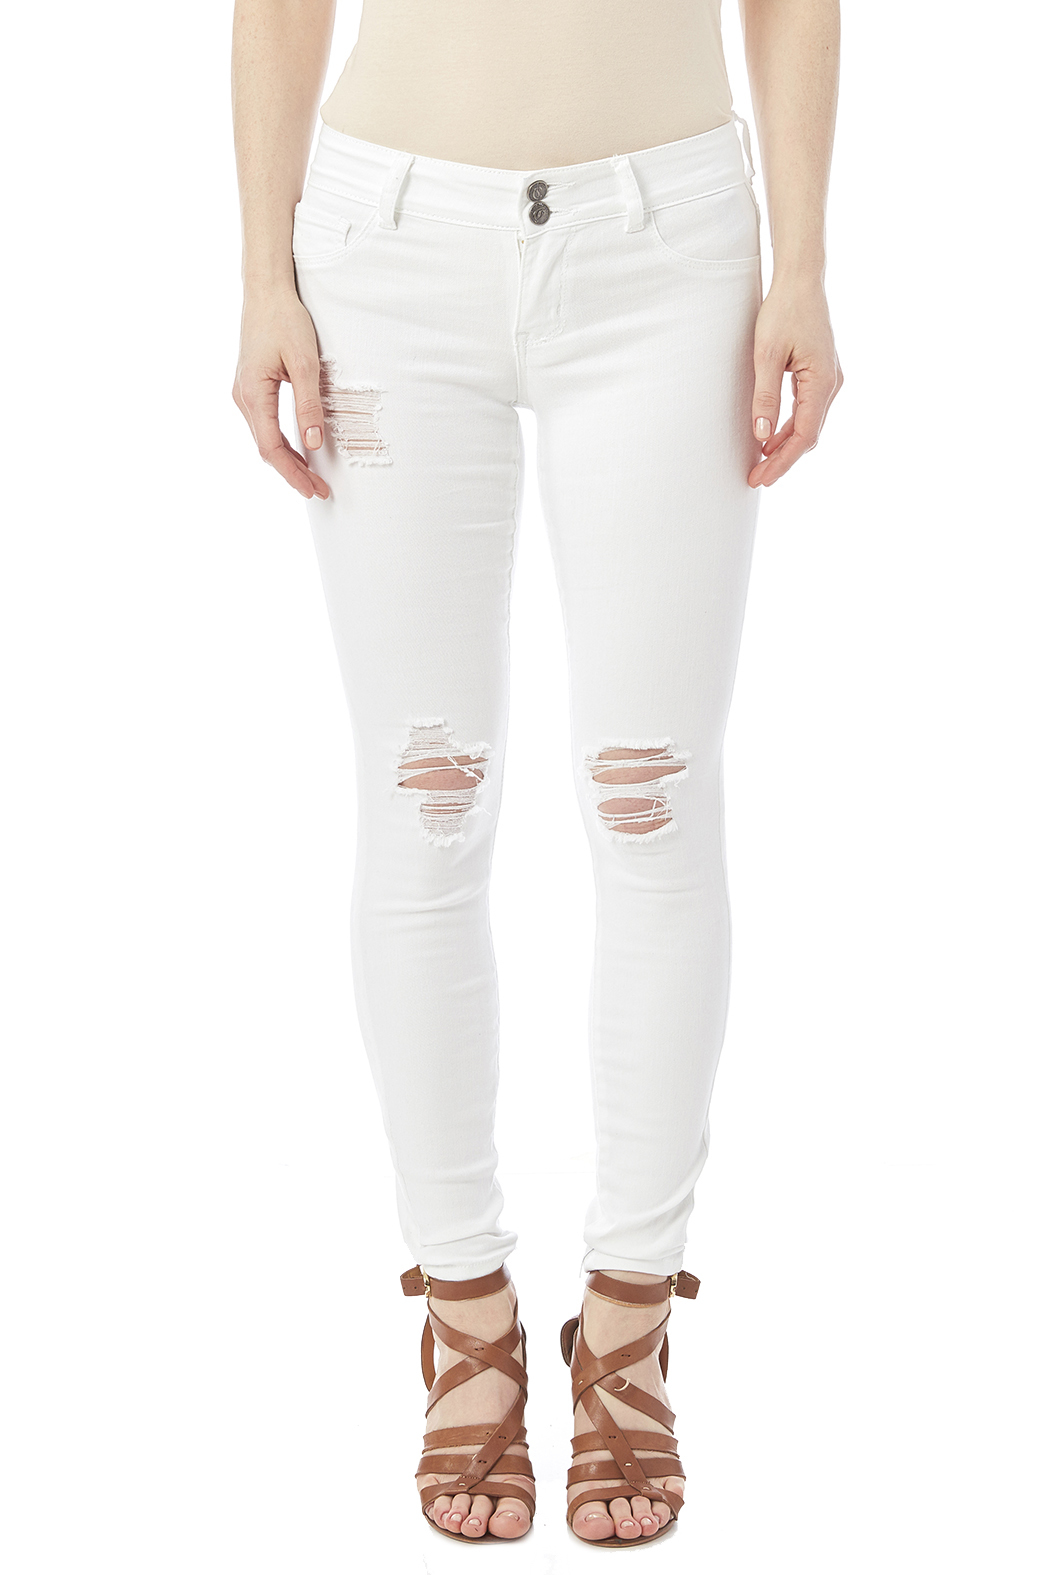 Cello White Distressed Jeans - Side Cropped Image